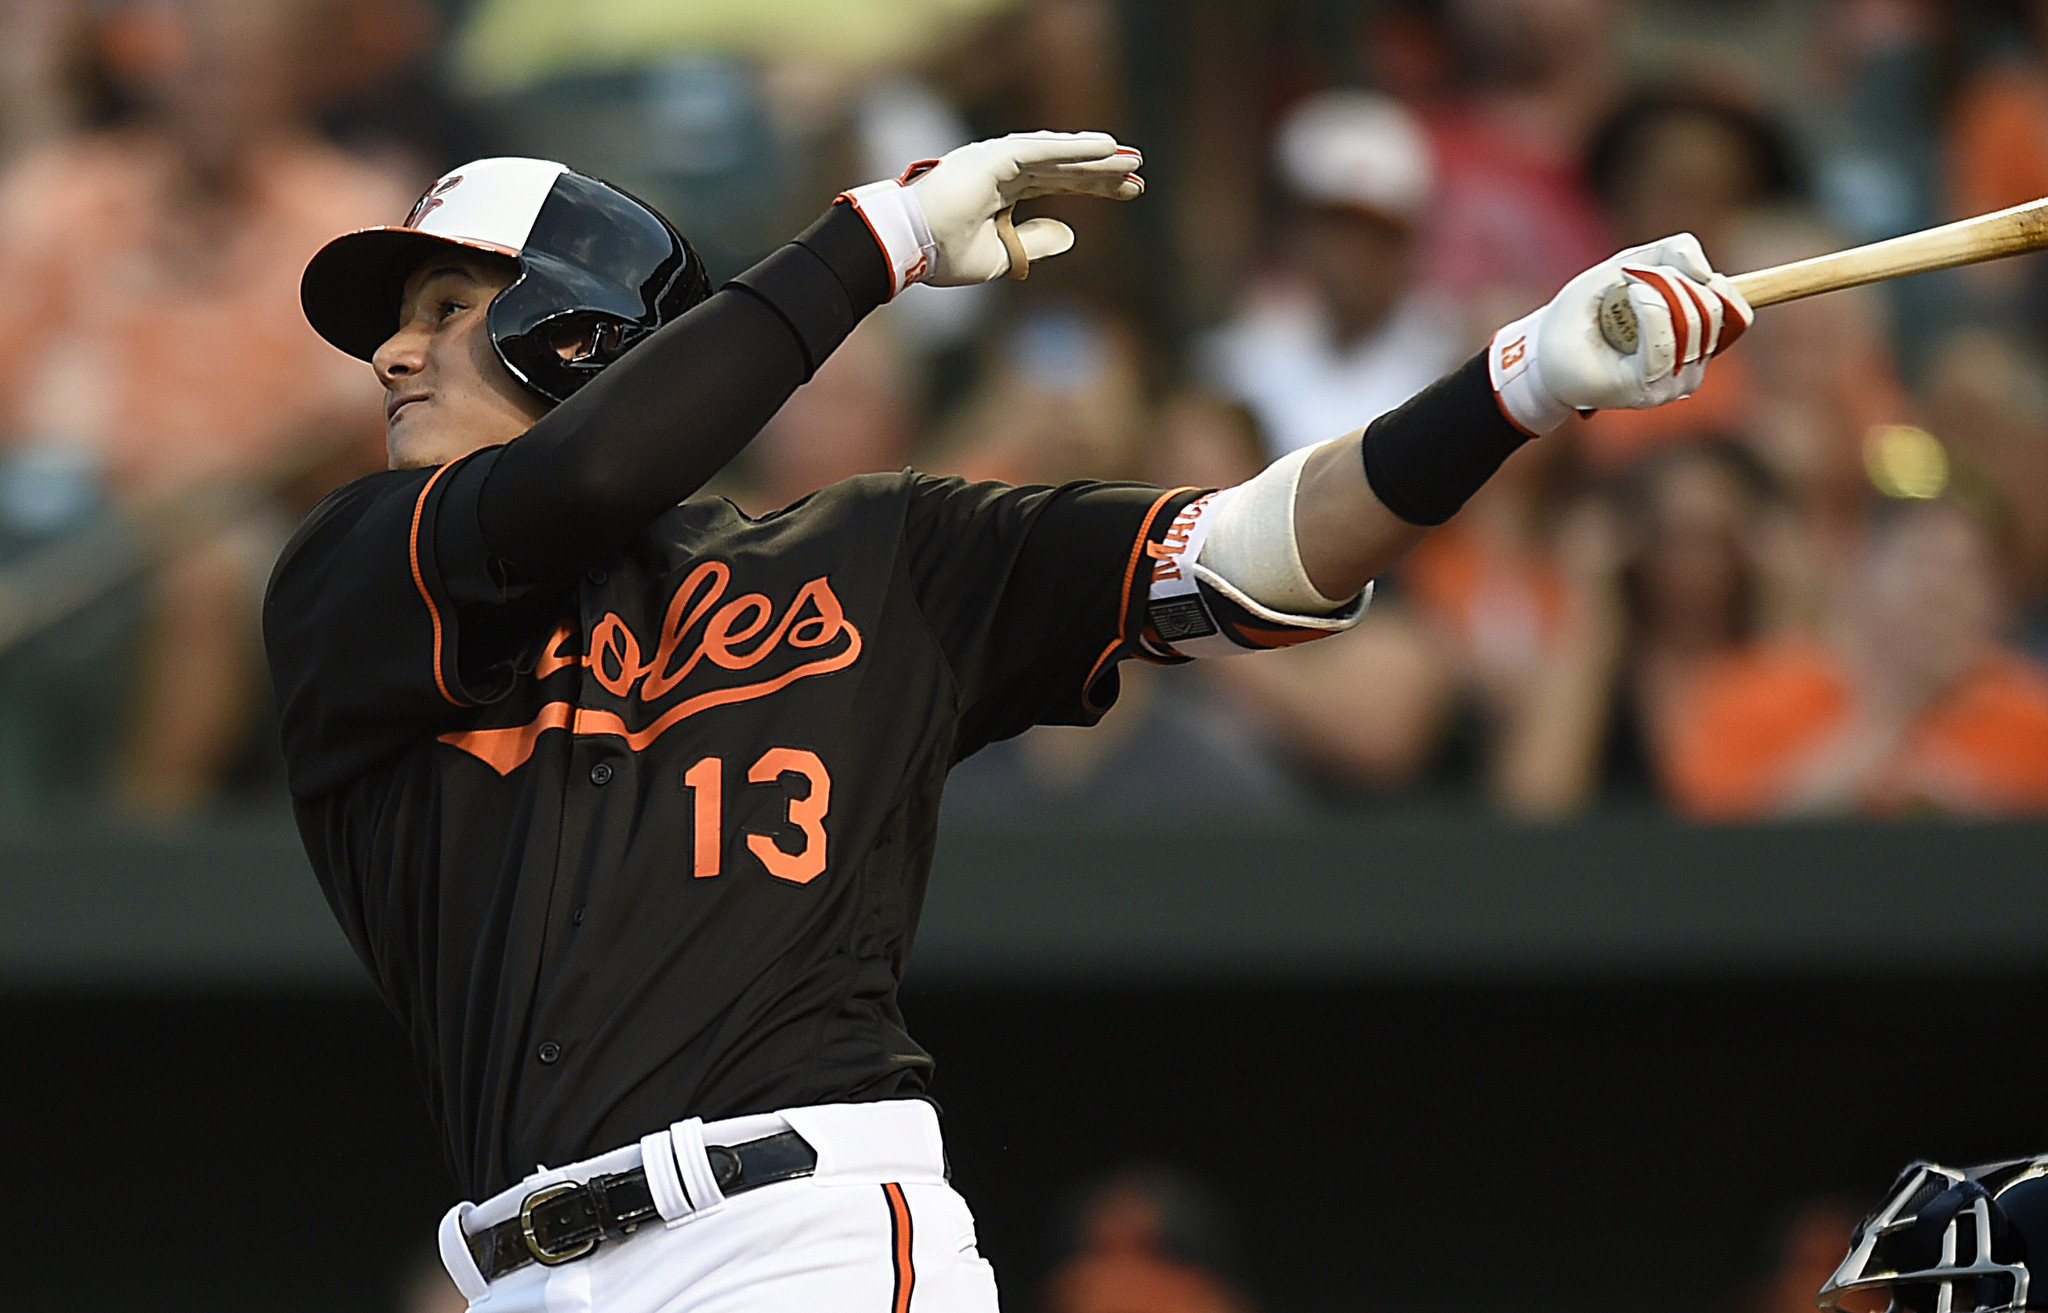 Bal-orioles-on-deck-what-to-watch-saturday-vs-indians-20160723